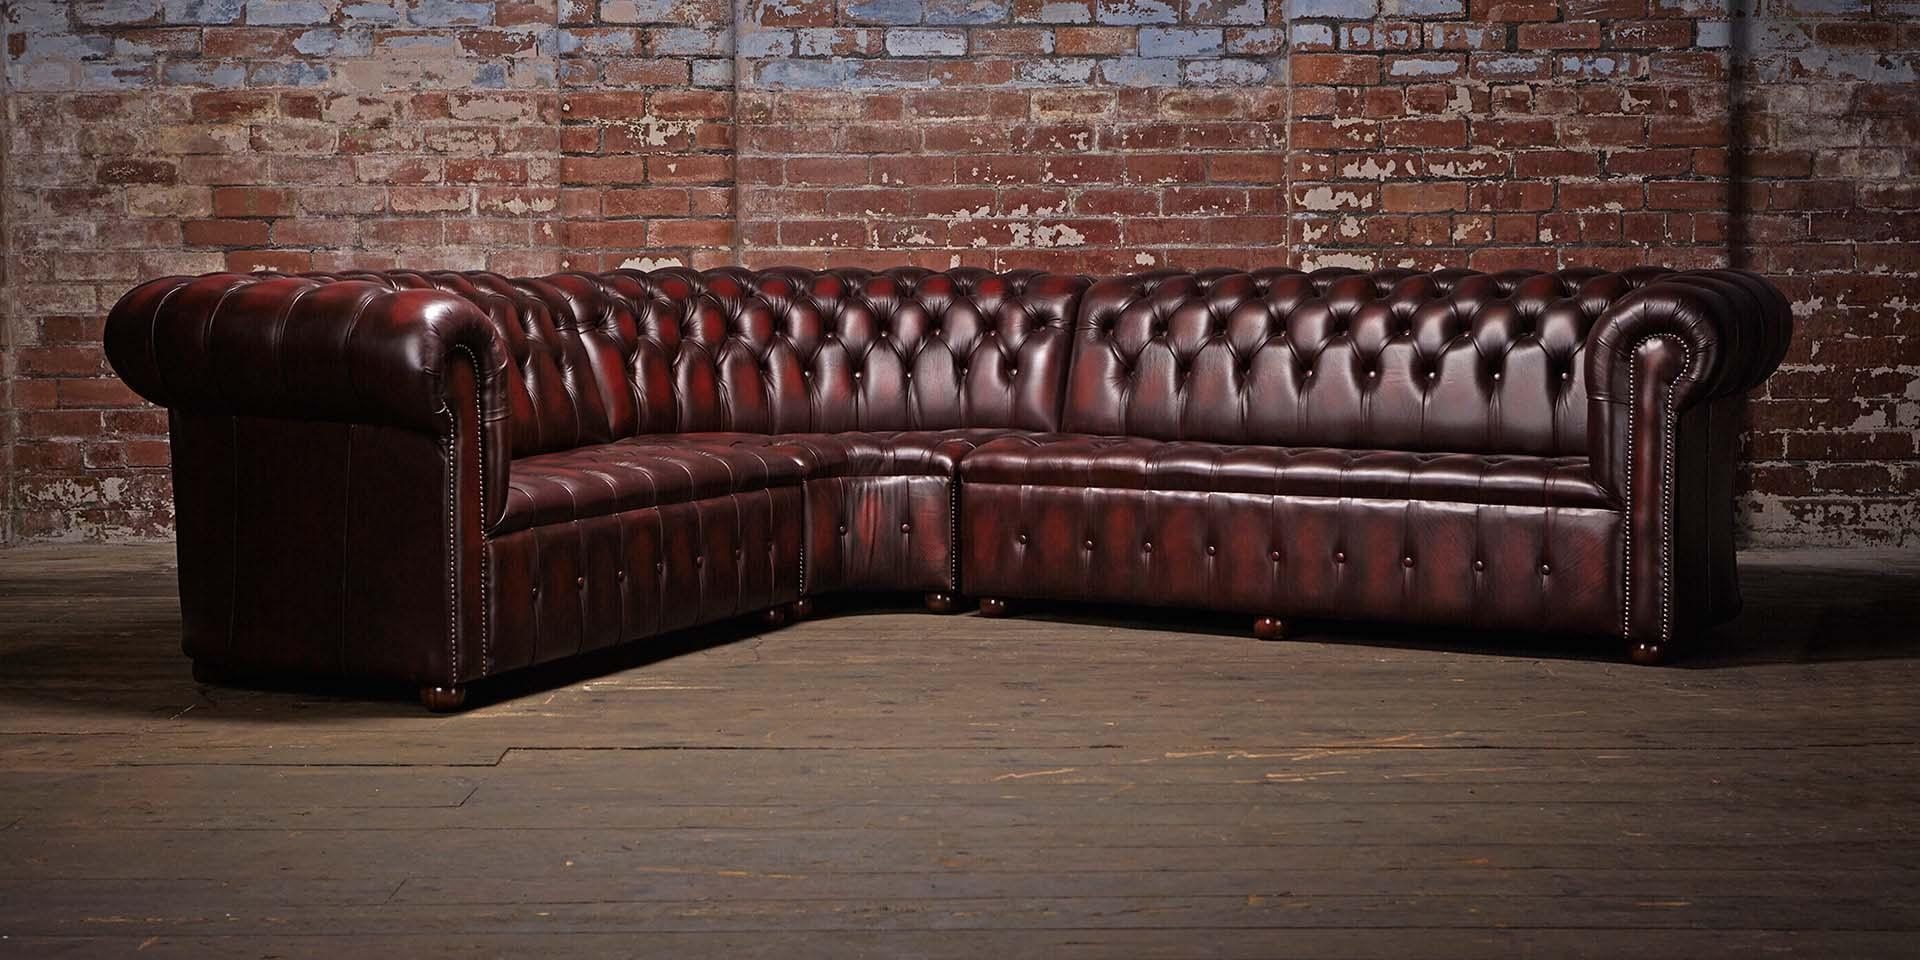 Red Leather Chesterfield Sofa | Sofa Gallery | Kengire Inside Red Leather Chesterfield Sofas (Image 9 of 20)